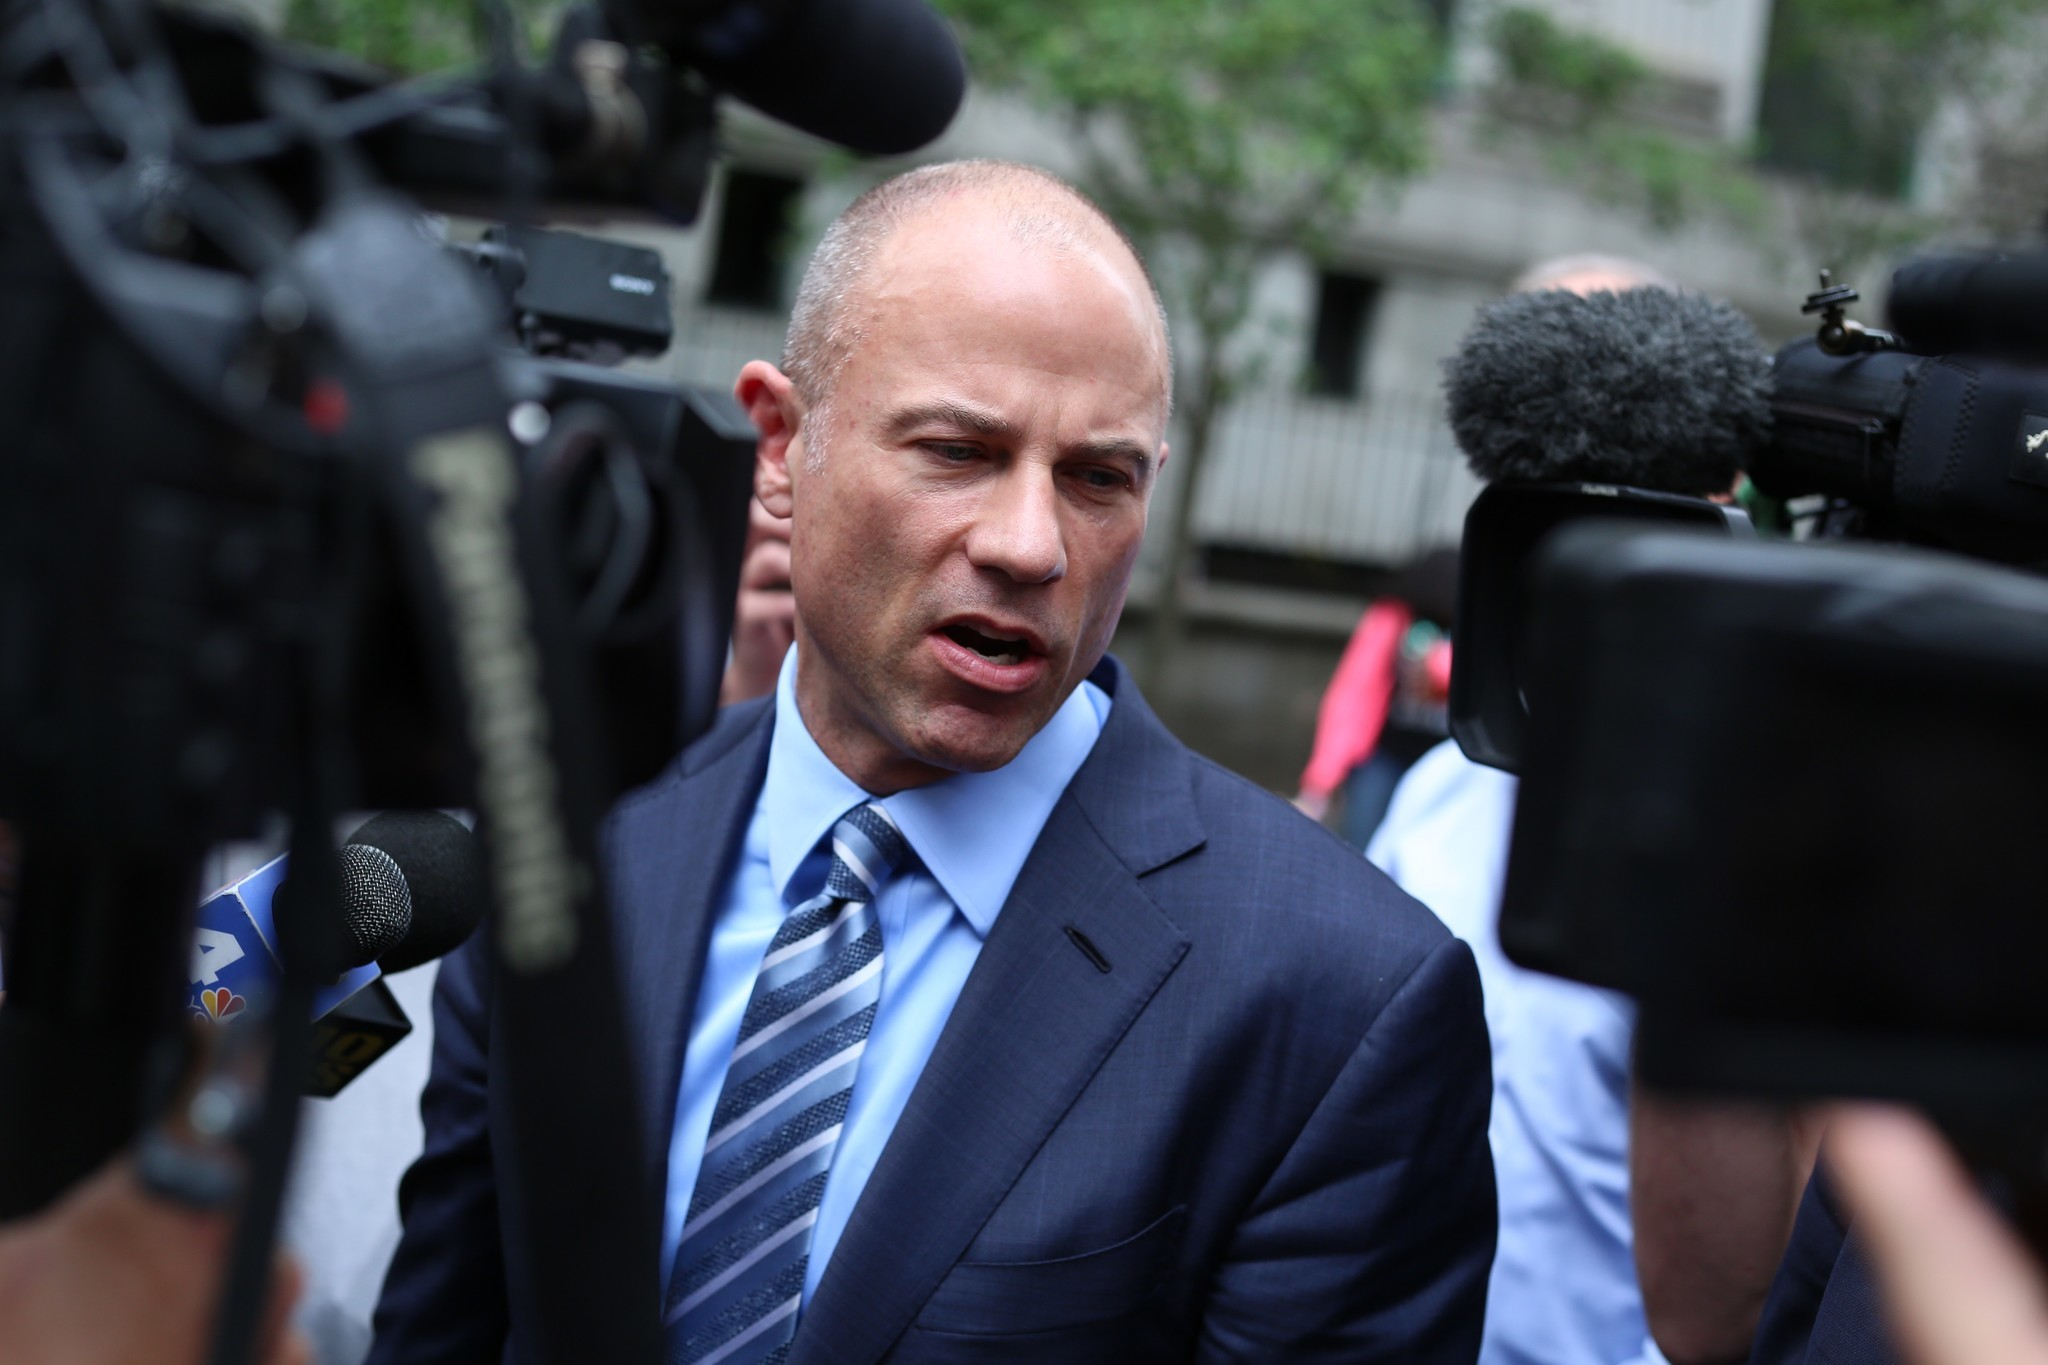 Michael Avenatti went rogue by threatening to go public with Nike bribery claims: testimony